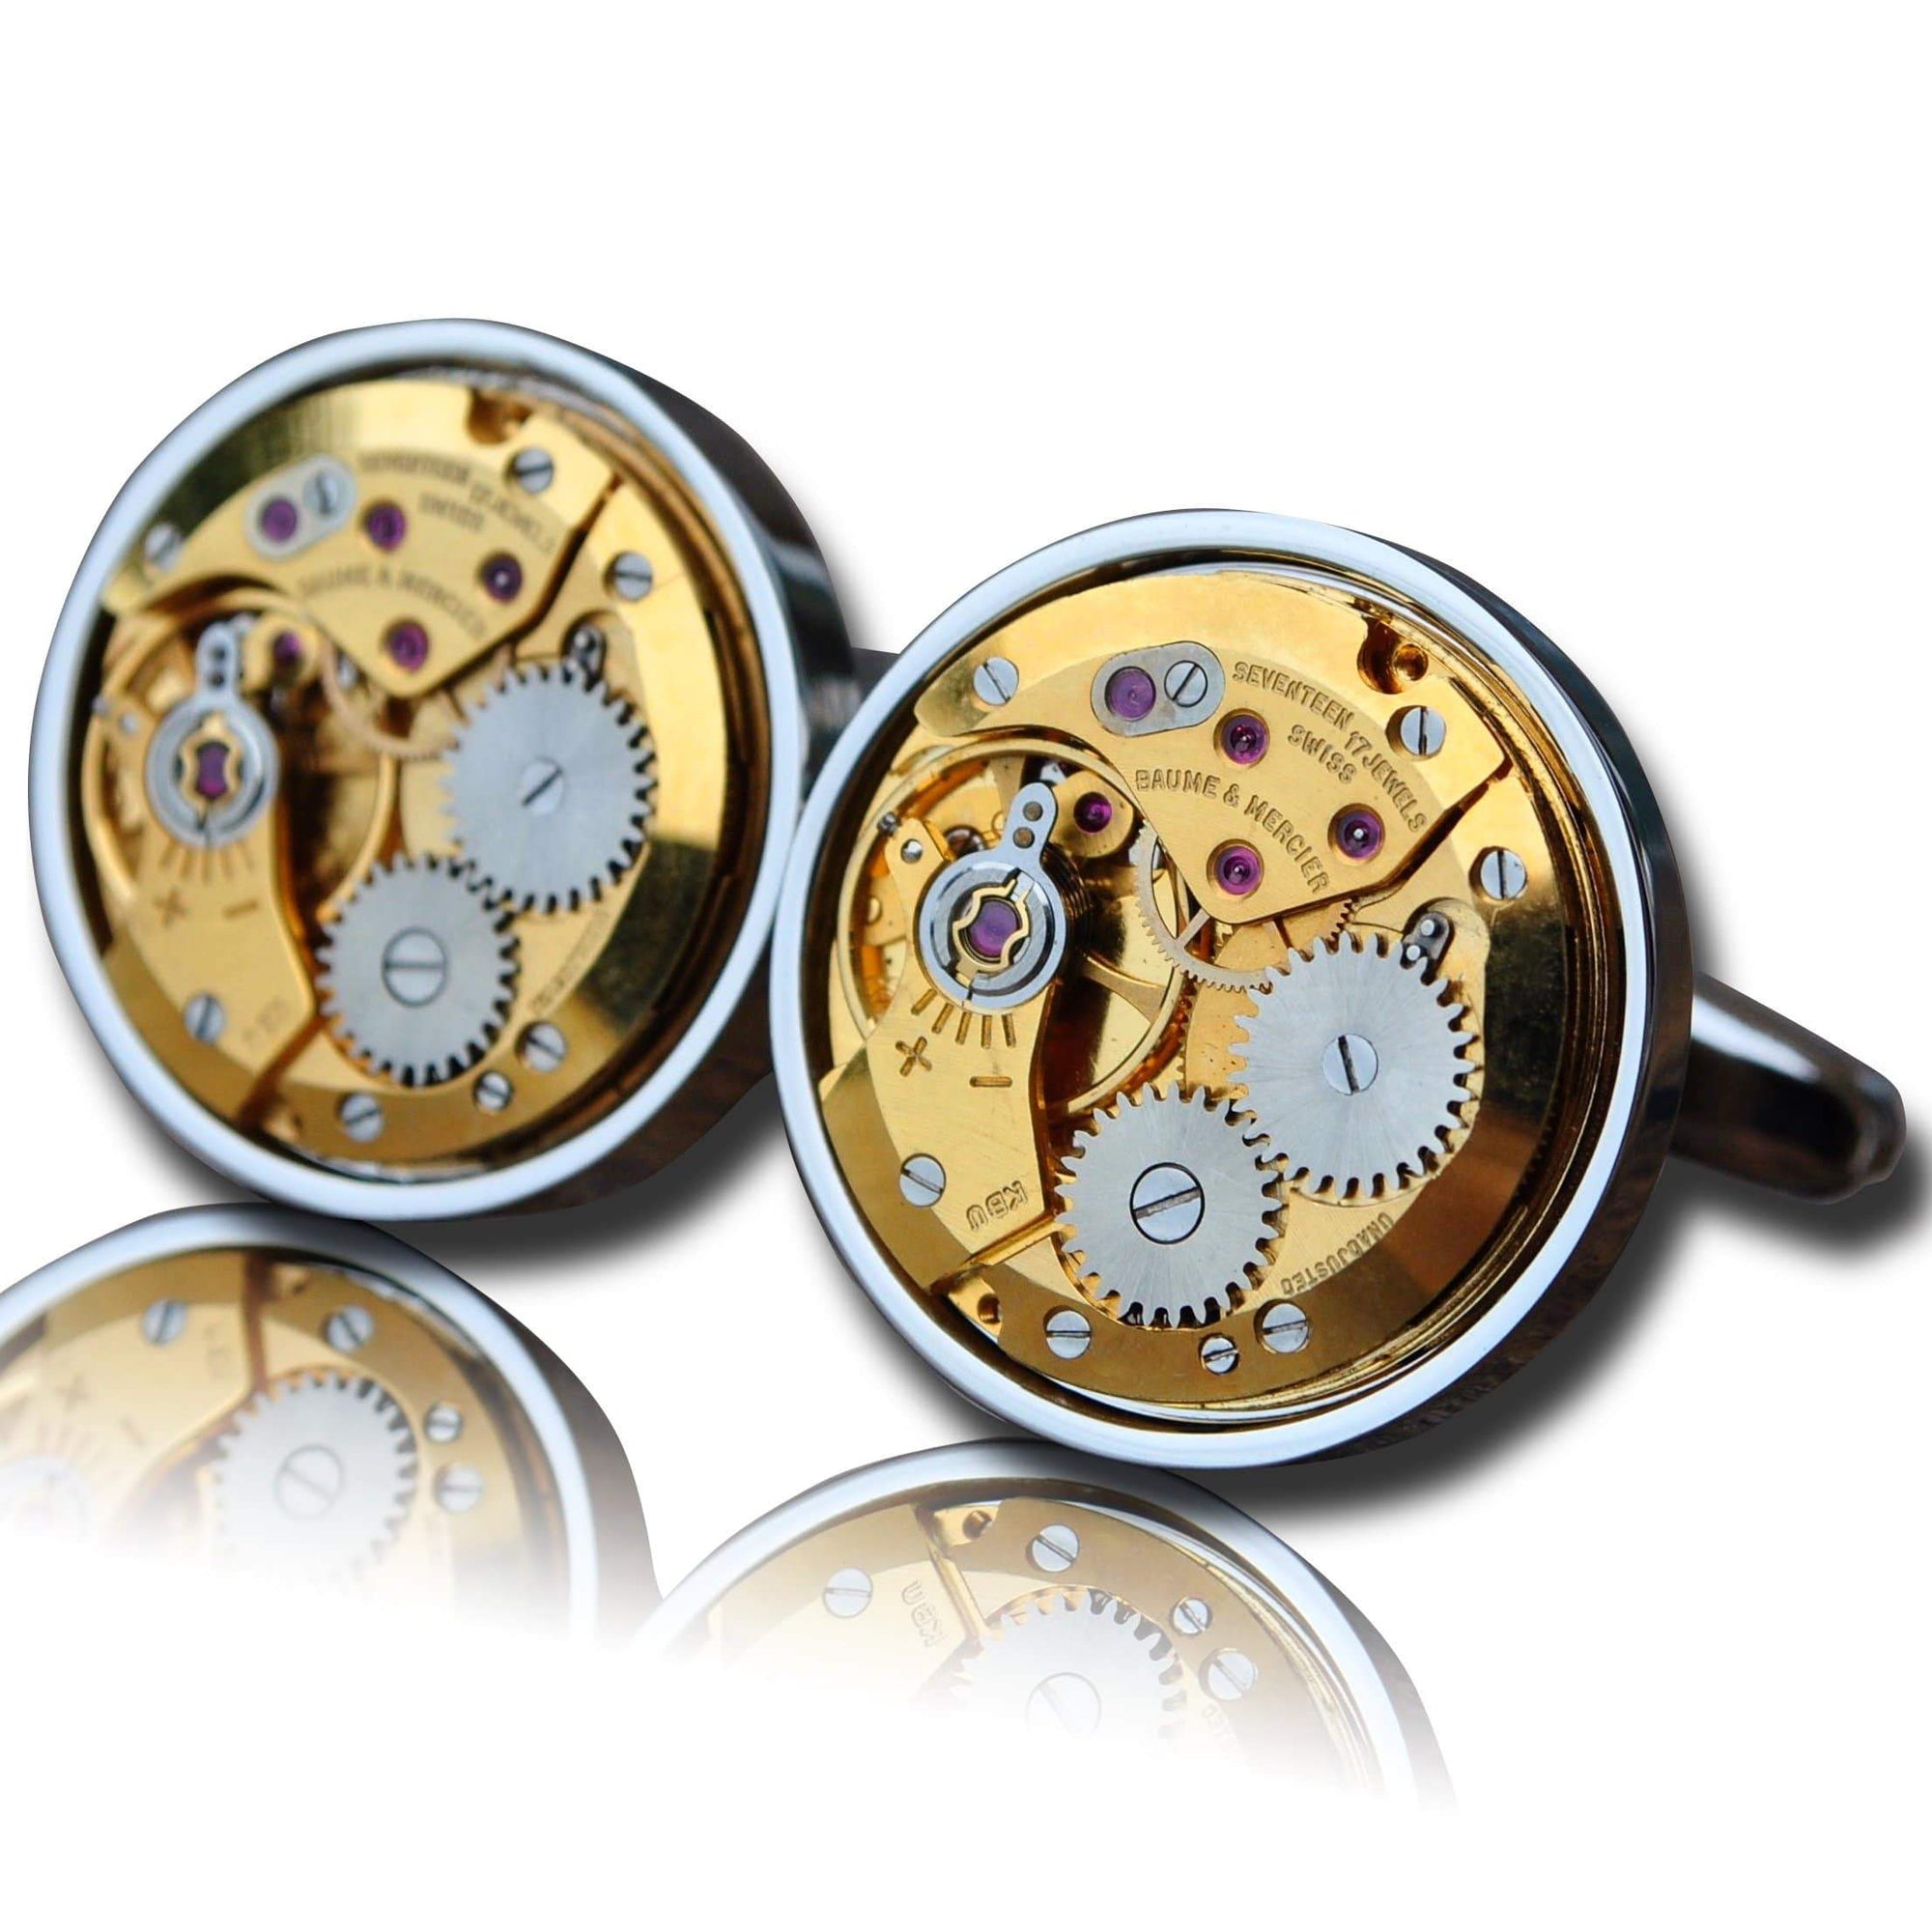 Men's Cufflinks | Lingo Luxe The Willis-Lingo Luxe Bespoke